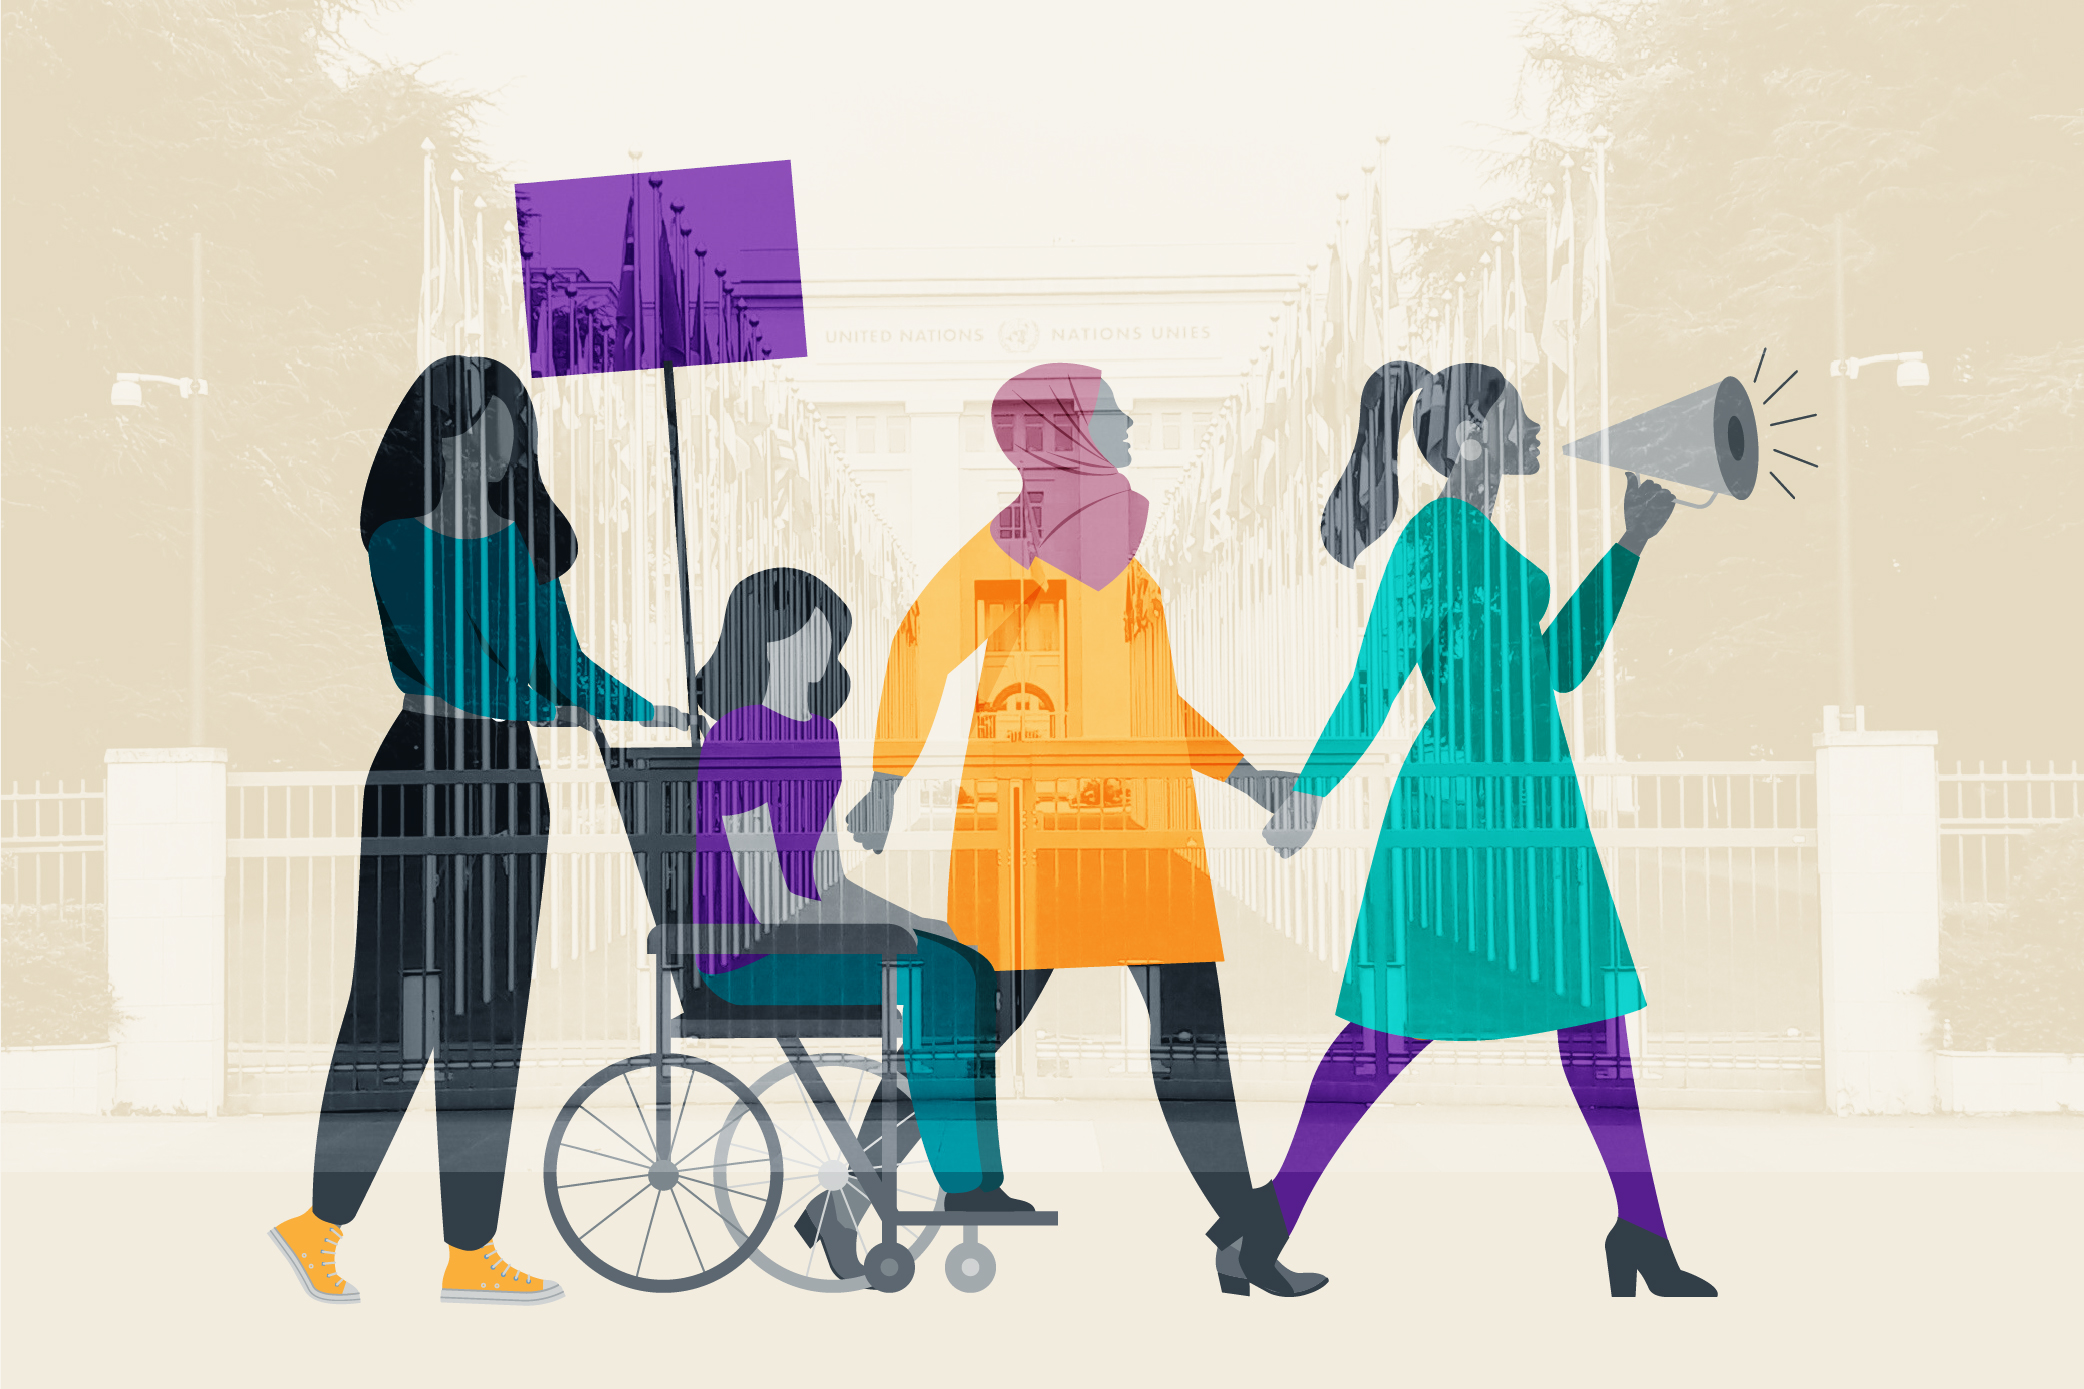 Illusration of four women walking. One is in a wheelchair. Behind is a photo of the UN building in Geneva.